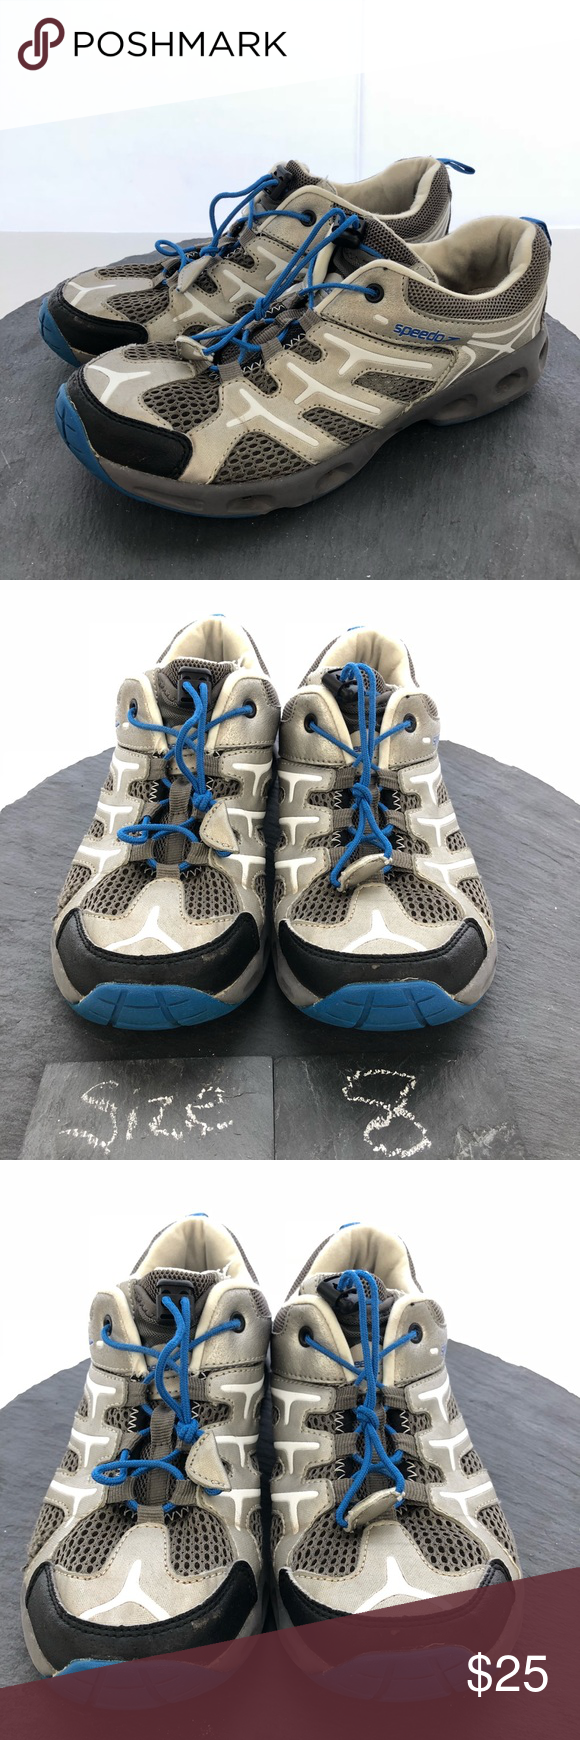 2f49a59c4843 Speedo hydro comfort water shoes men s size 8 The product you are  purchasing is a pair of Speedo Men s water shoes size 8. These shoes are in  good condition ...